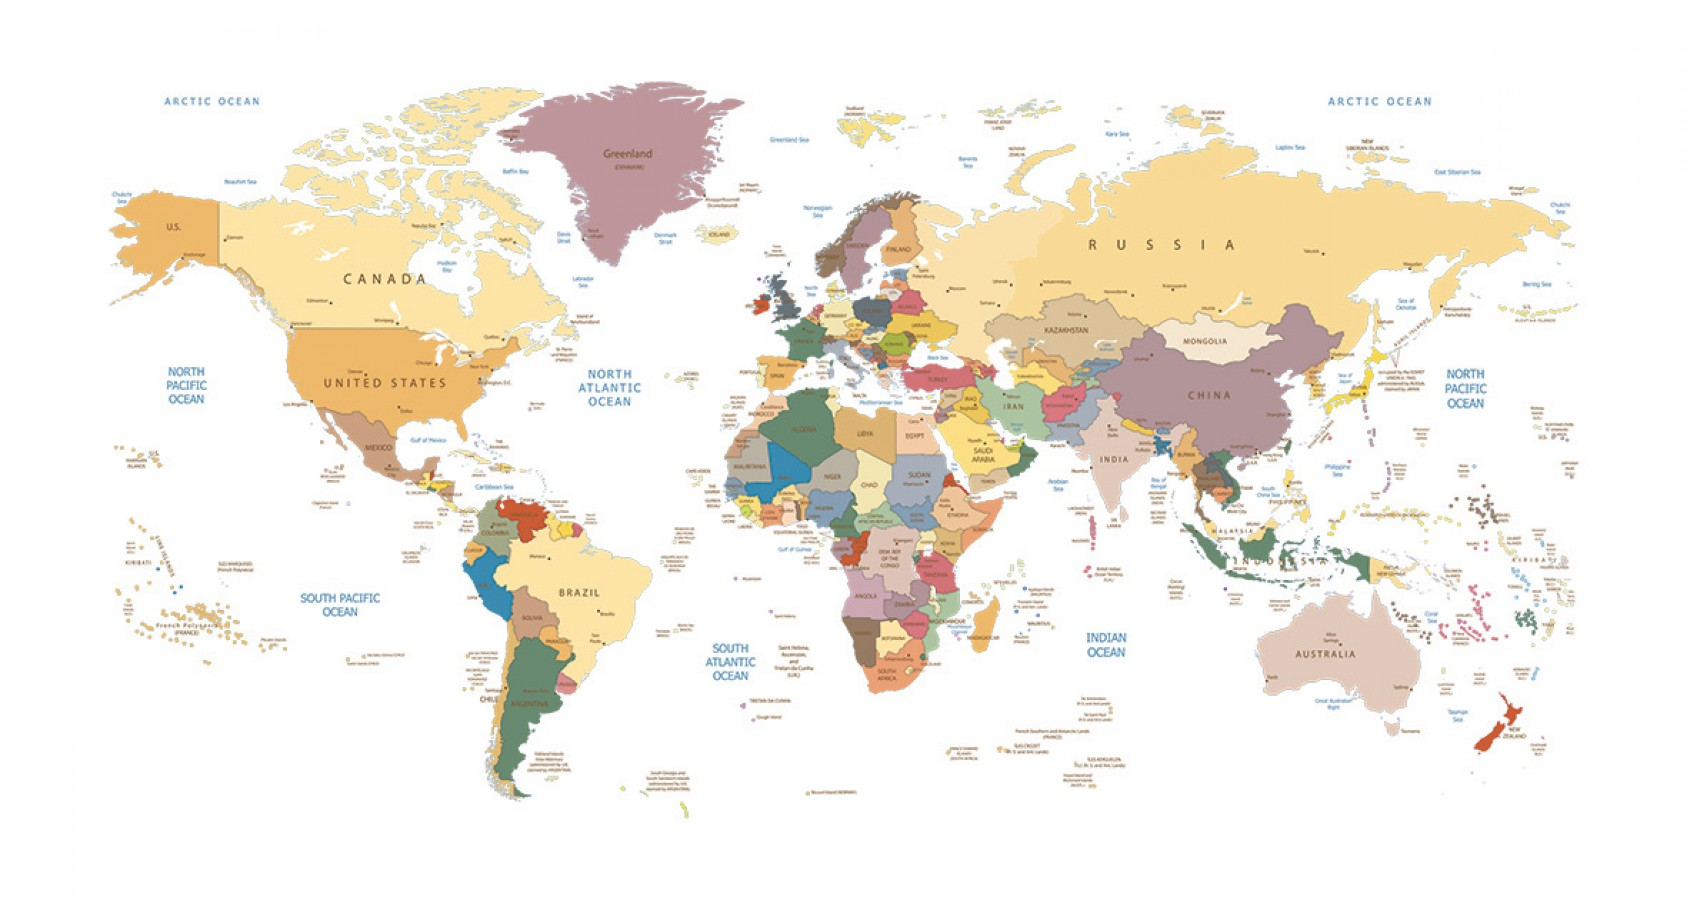 Fotomural Countries World Map 3 A08-M908 Fotomural Countries World Map 3 A08-M908